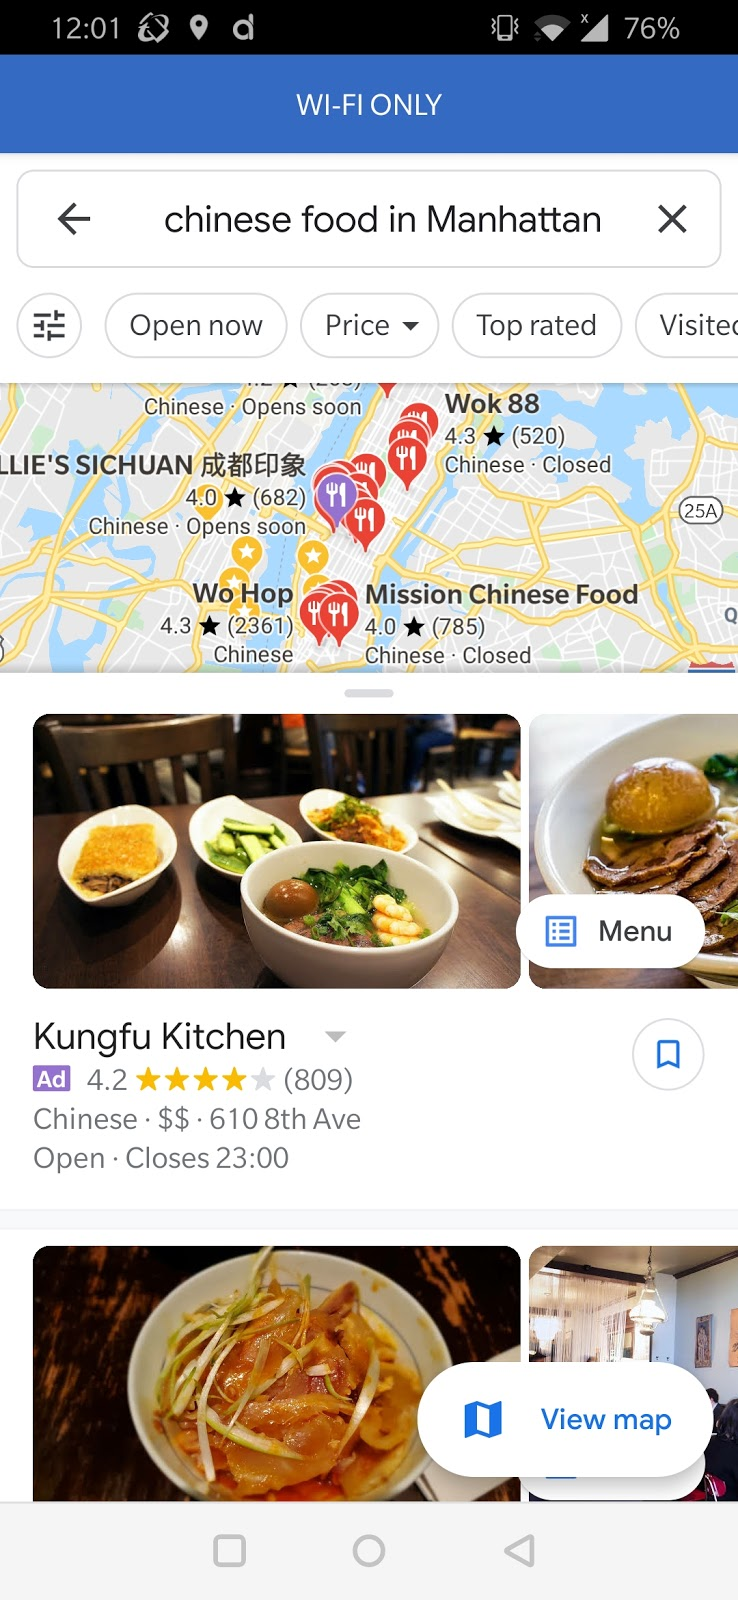 in-map native mobile ads